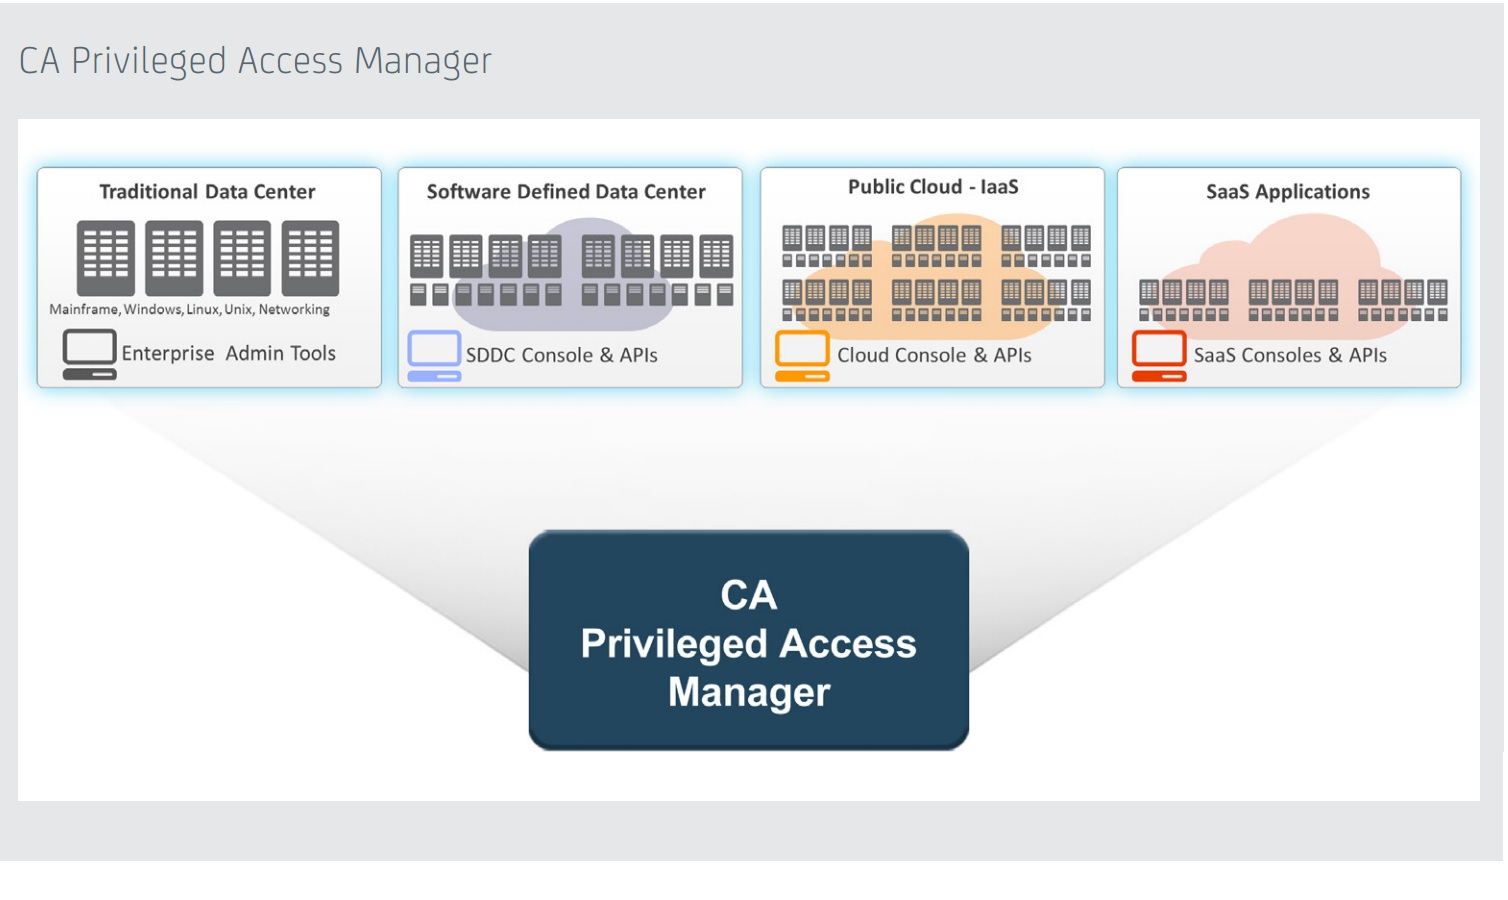 CA Privileged Access Manager